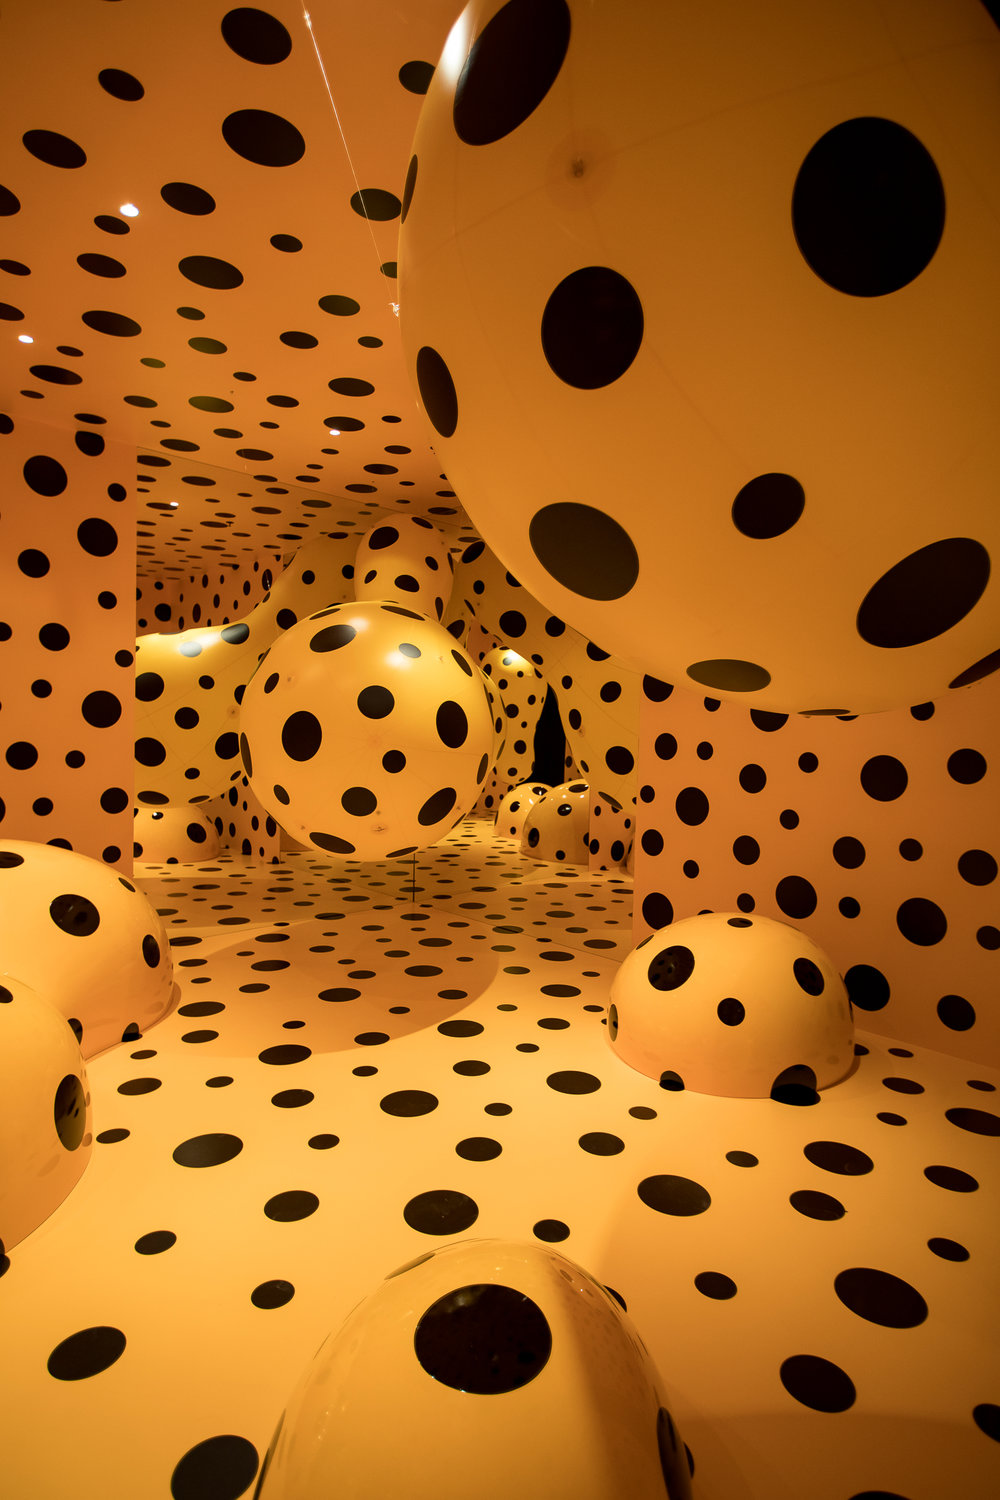 Dots Obsession—Tasmania 2016  Yayoi Kusama (Born 1929, Matsumoto, Japan; lives and works in Tokyo, Japan) Mixed media installation Commissioned by Mona for On the Origin of Art   ©Yayoi Kusama. Courtesy YAYOI KUSAMA Inc., Ota Fine Arts, Tokyo/ Singapore and Victoria Miro Gallery, London